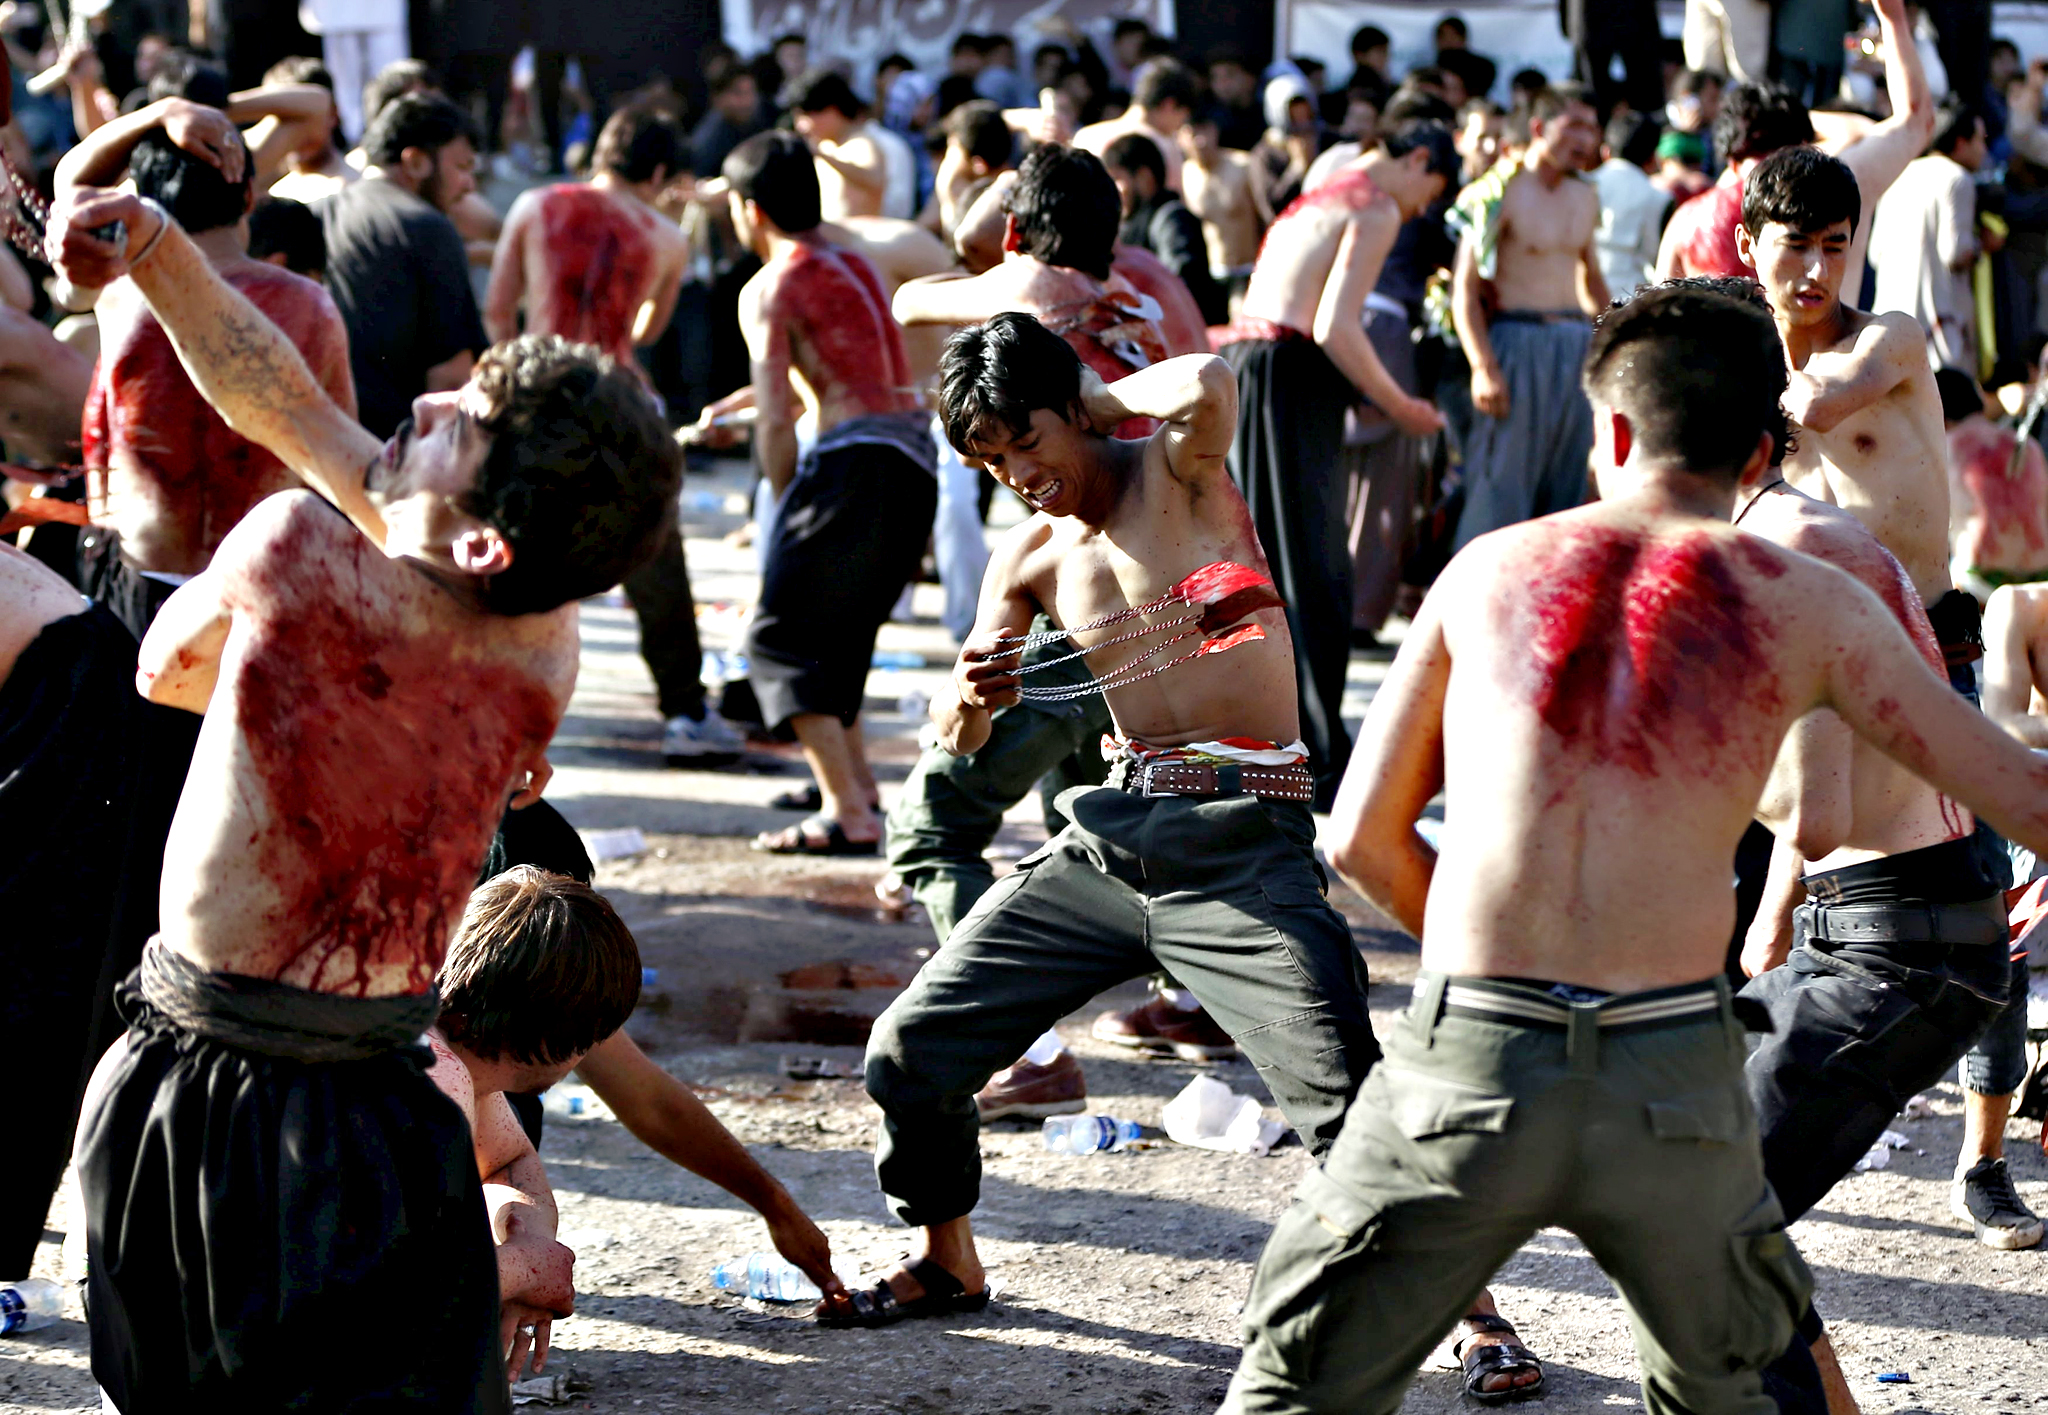 Afghan Shia Muslims flagellate themselves during an Ashura procession in Kabul, Afghanistan on Tuesday